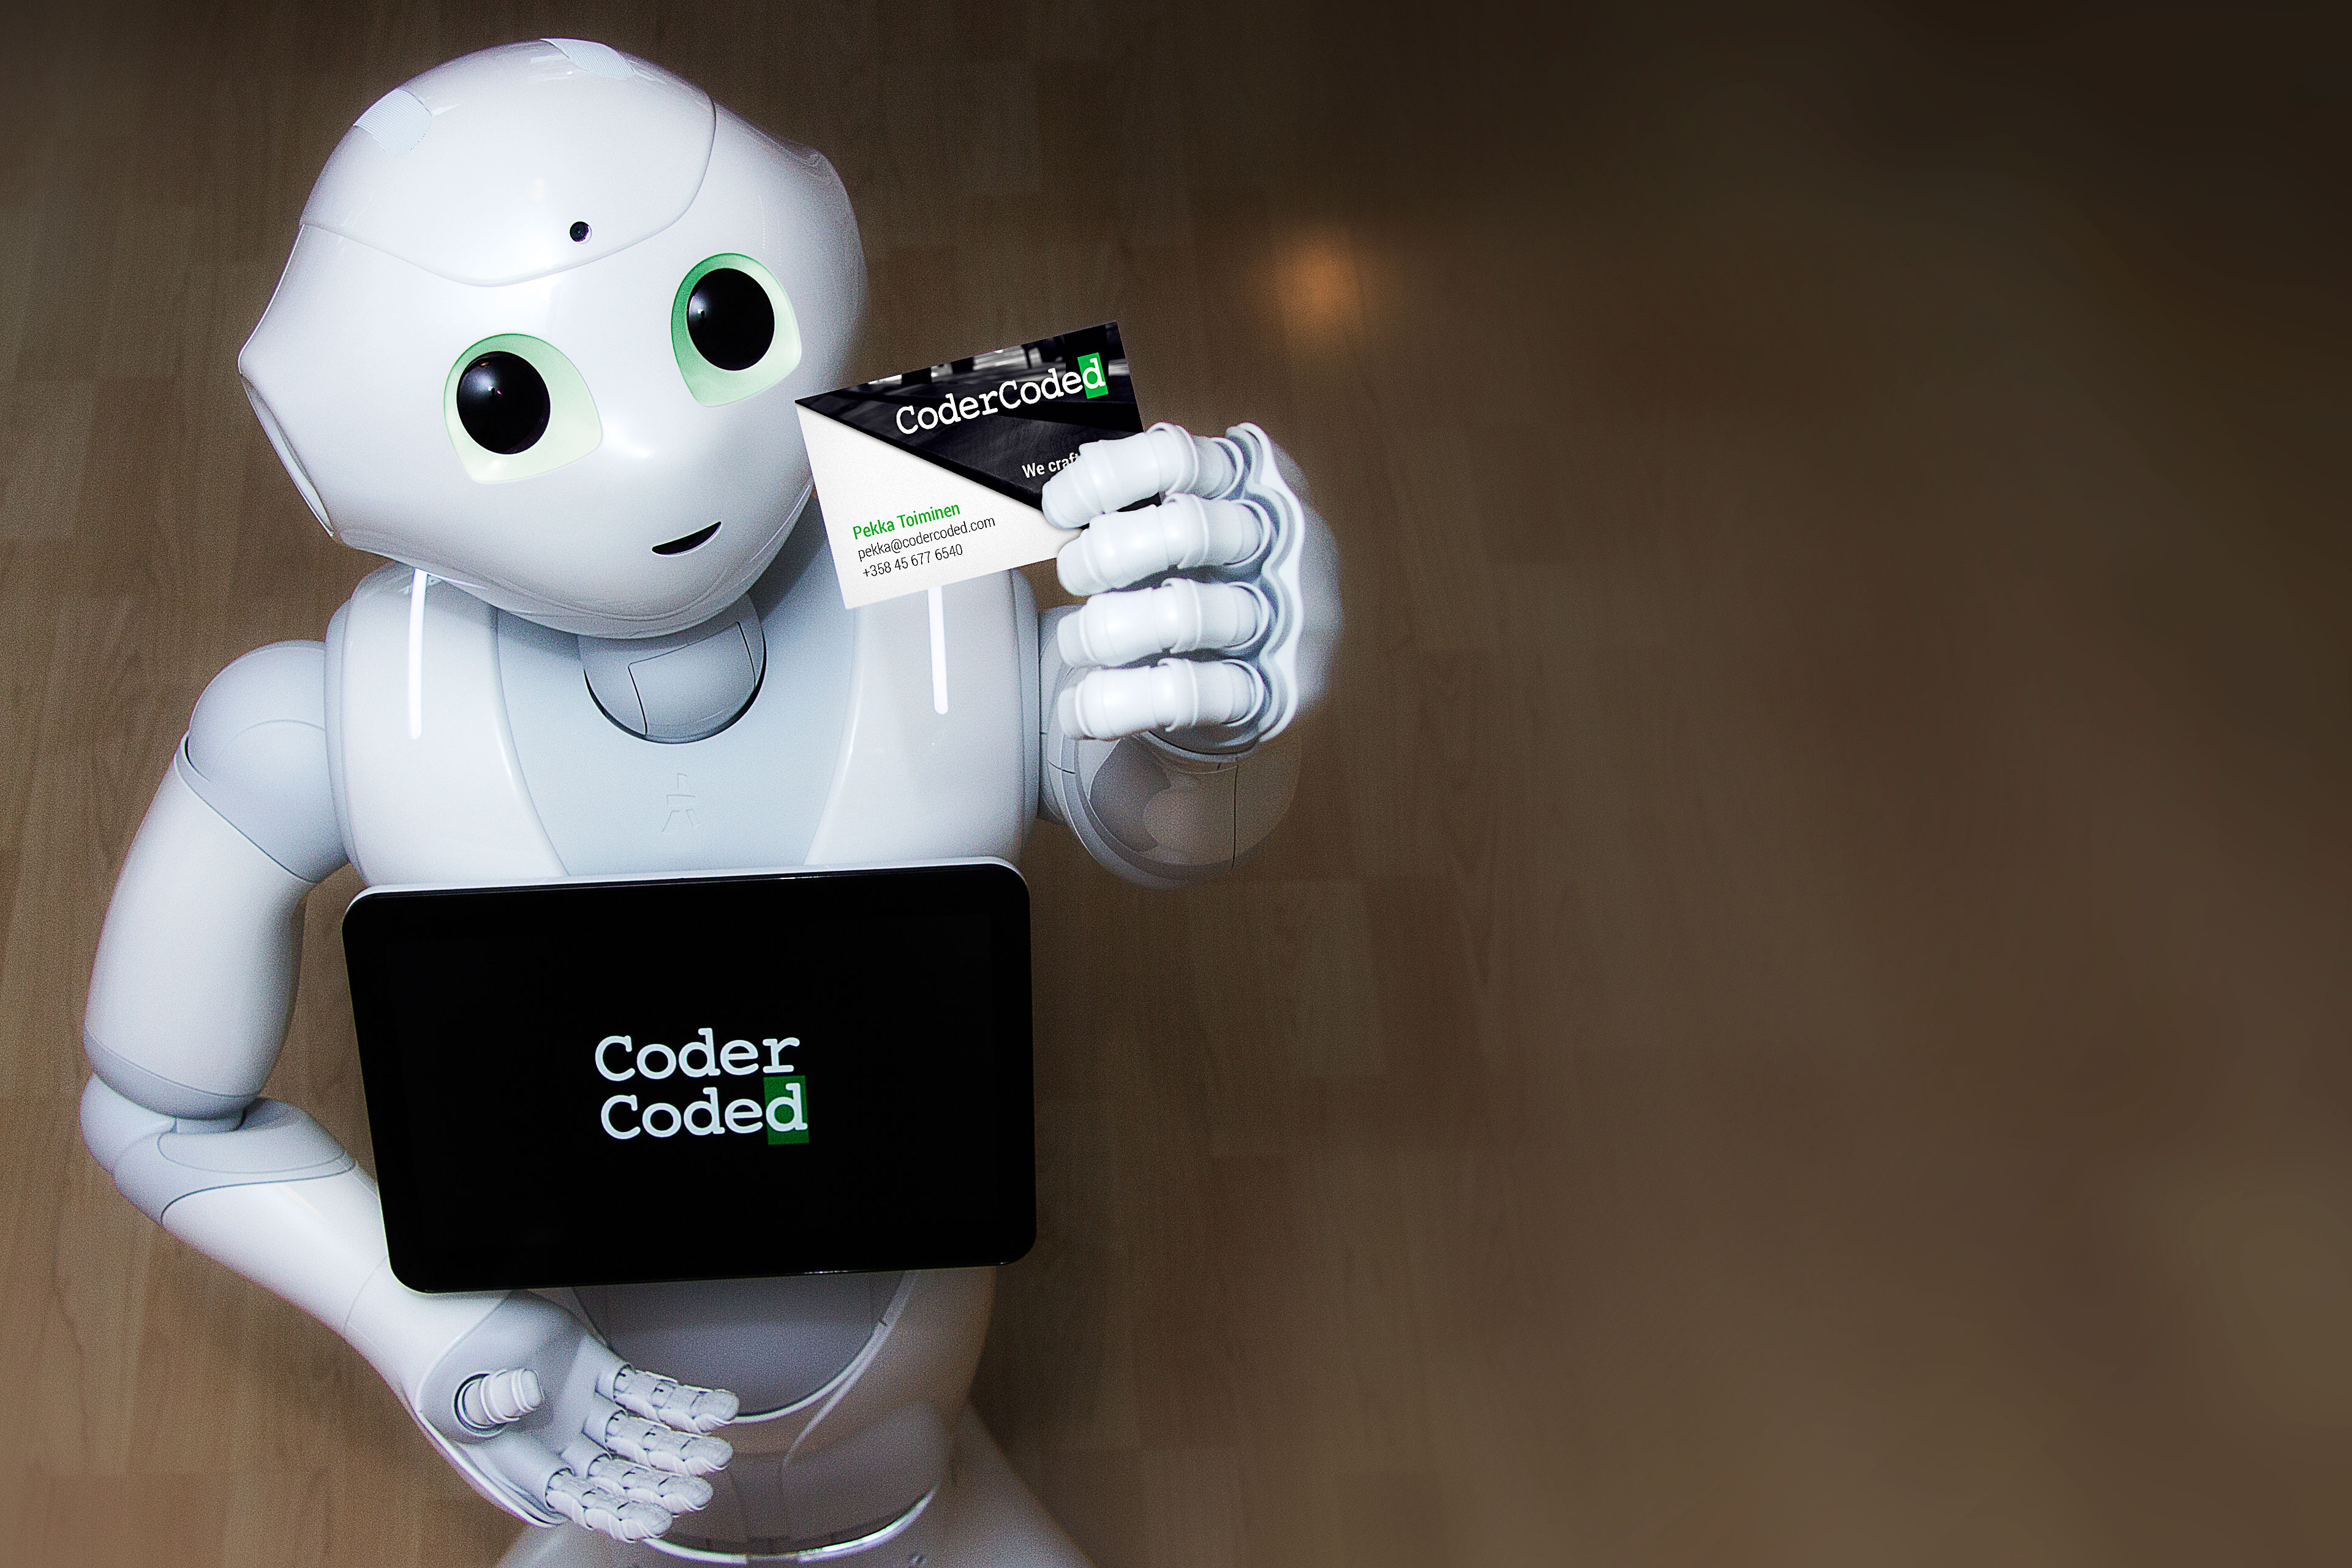 Pepper is the most advanced humanoid robot currently available